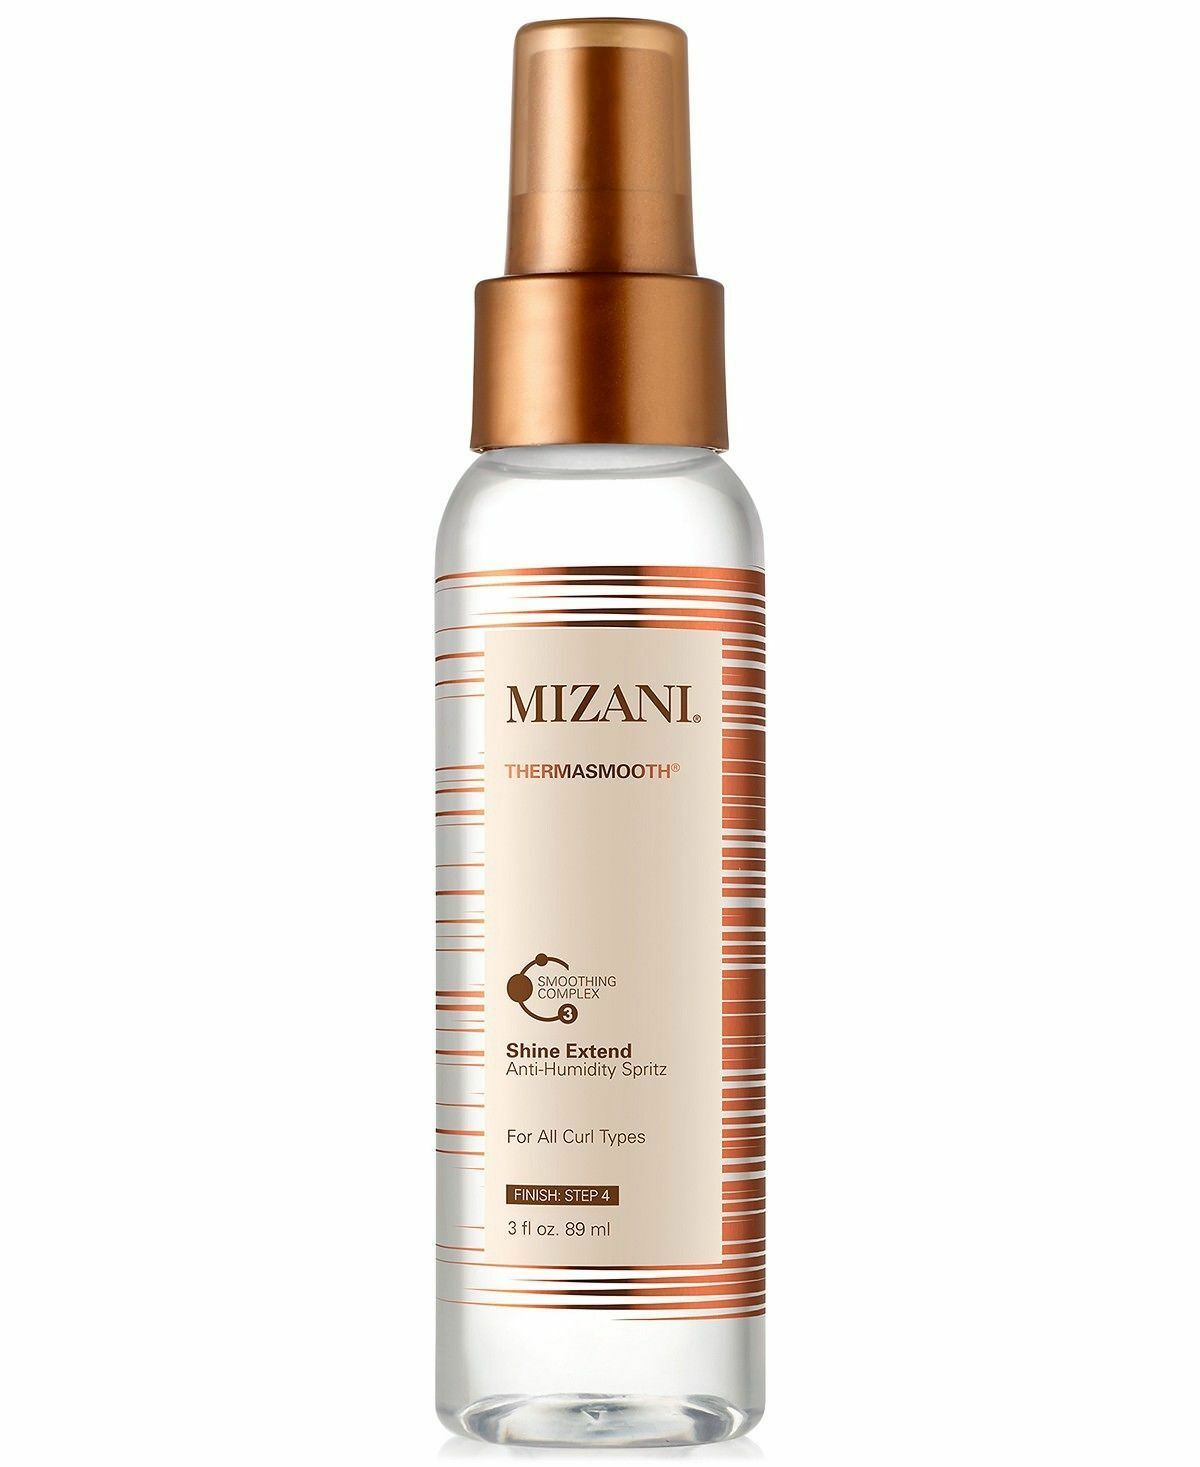 Mizani Therma Smooth Shine Extend Anti Humidity Spray 3oz Hair Care & Styling